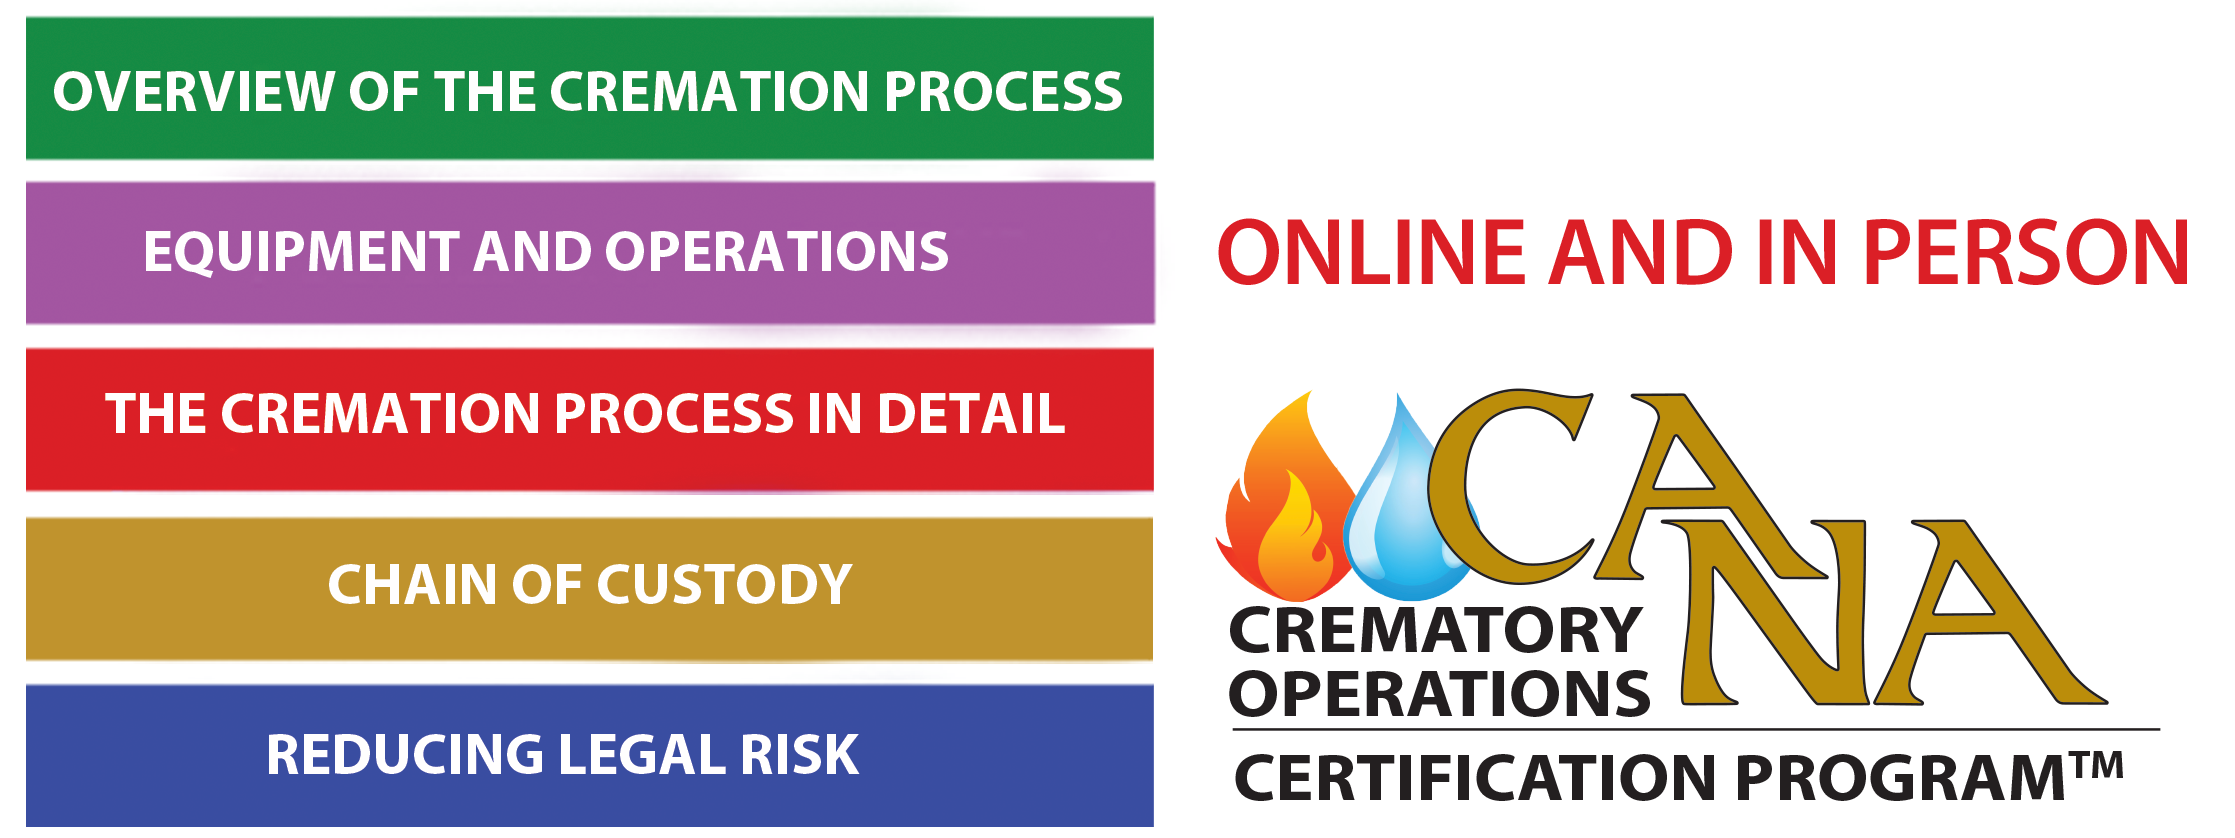 CANA's Crematory Operations Certification Program